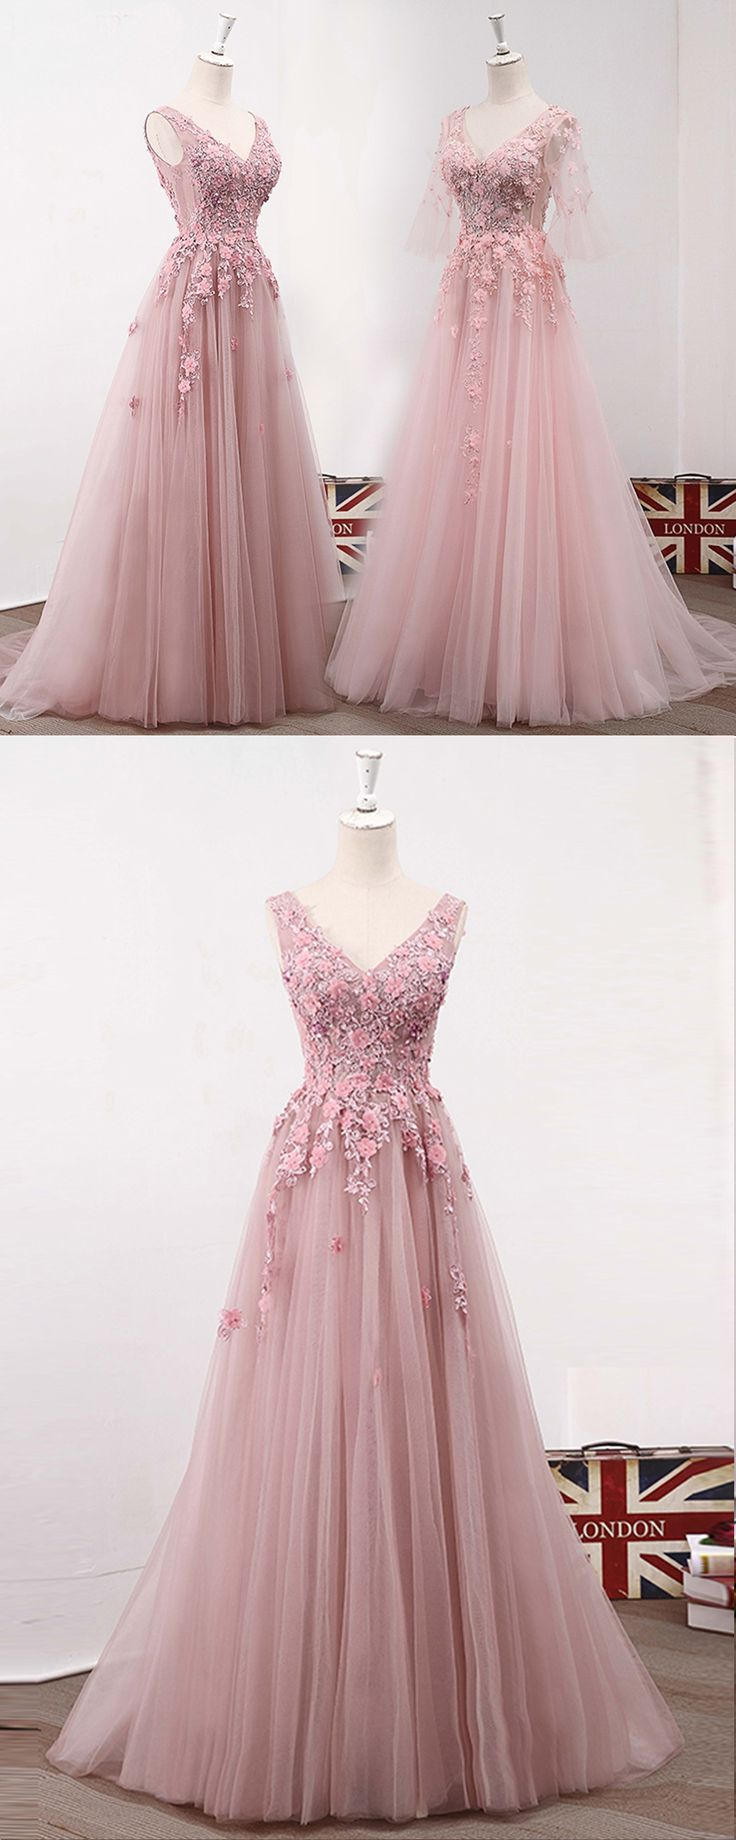 http://www.3cgirls.com/_p/prd1/4654042661/product/spring-pink-tulle-v-neck-long-sweet16-prom-dresses